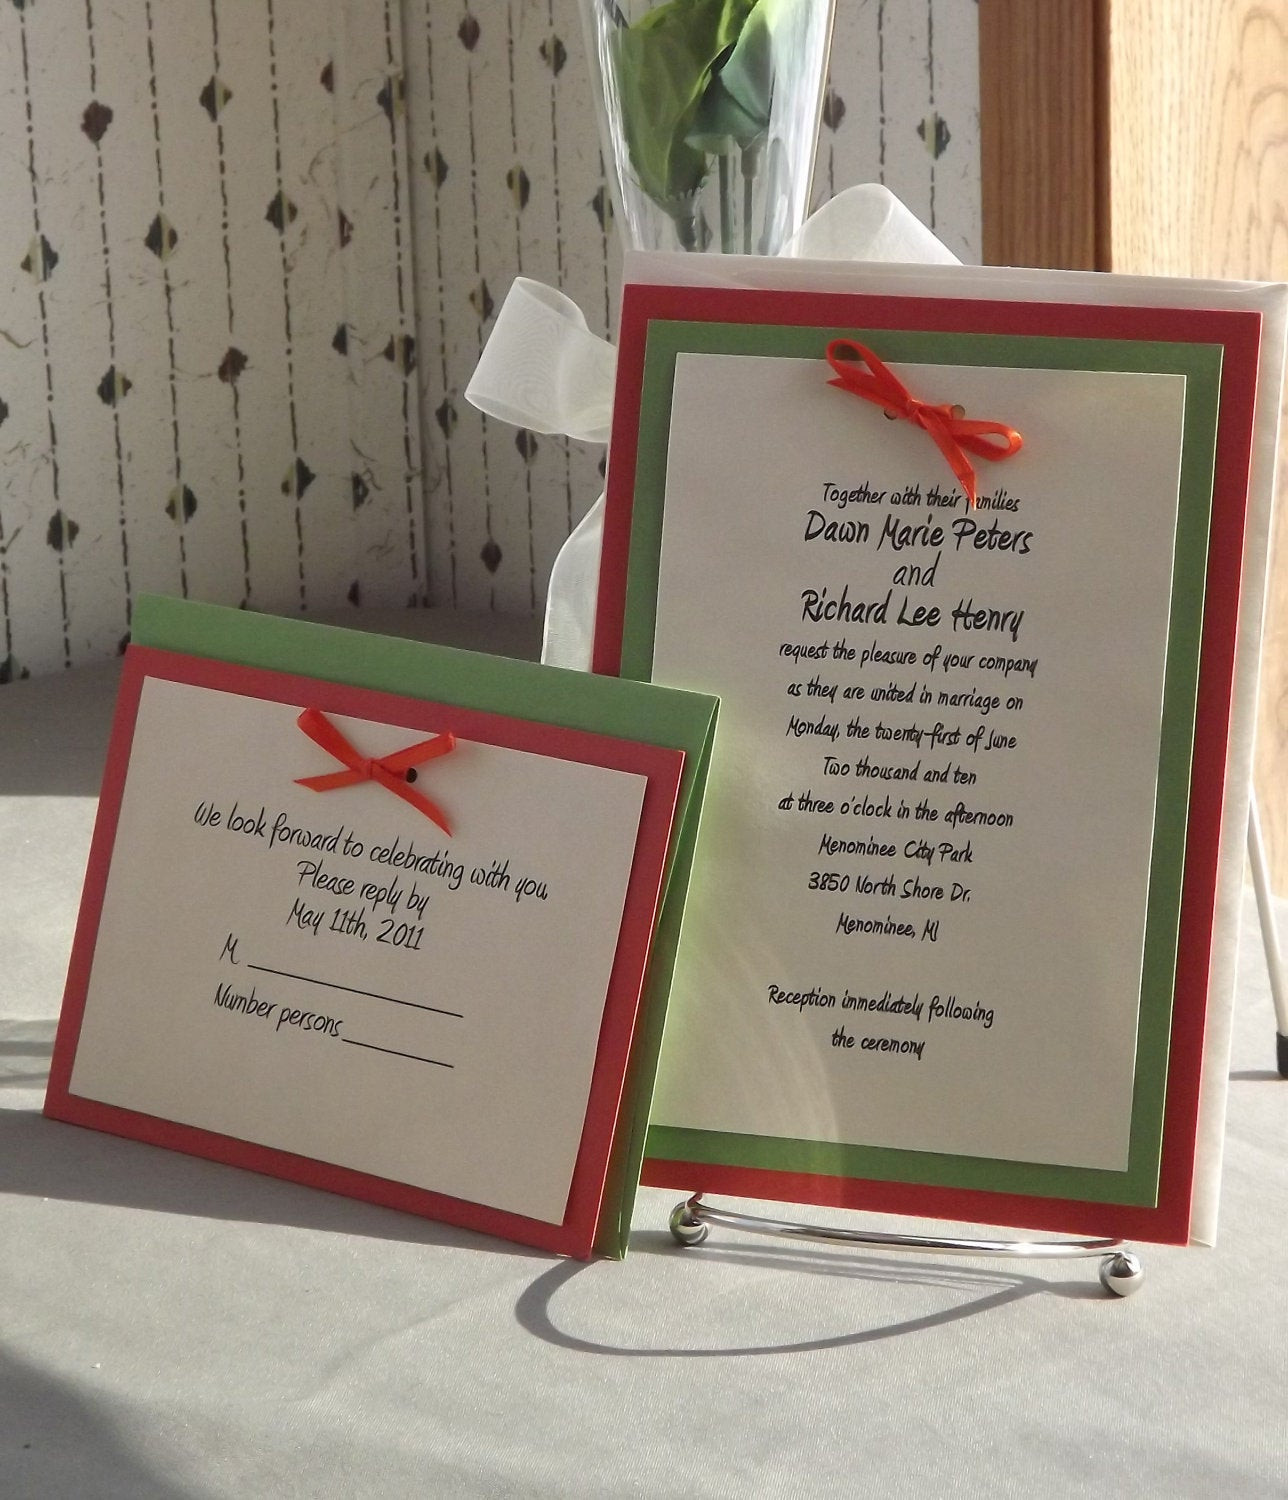 Best ideas about DIY Invitations Kits . Save or Pin SALE DIY Wedding Invitation Kits with Invitations RSVP and Now.